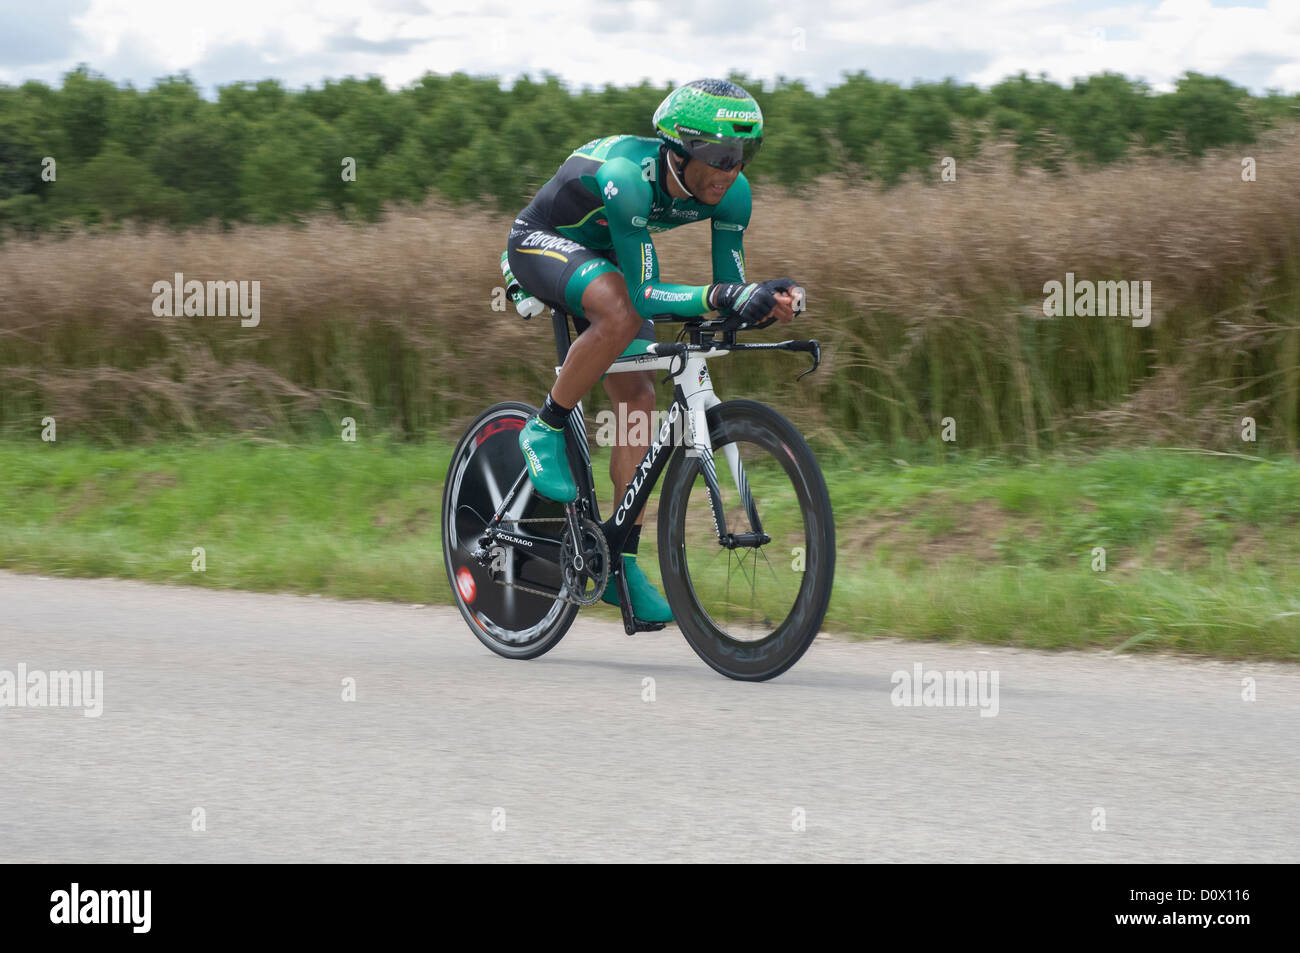 Yohann Gene of Team Europcar on the 19th Time Trial stage of the 2012 Tour de France near Illiers-Combray in the - Stock Image